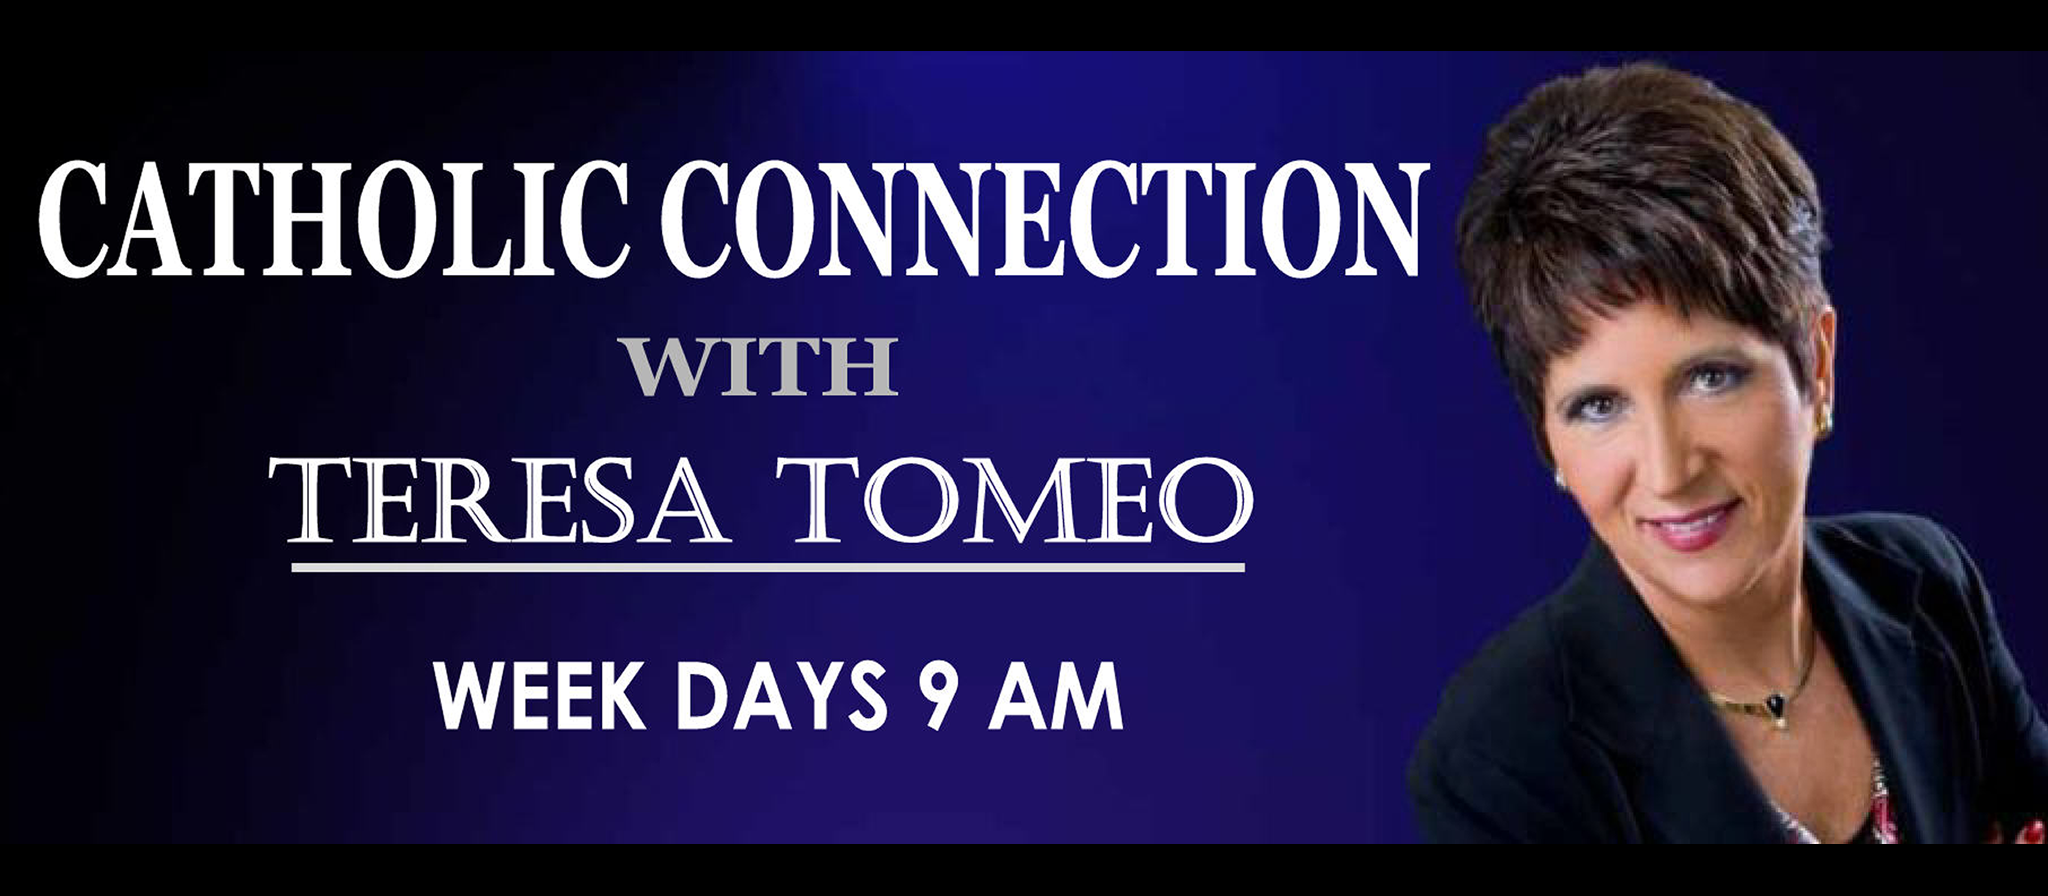 Catholic Connection with Teresa Tomeo